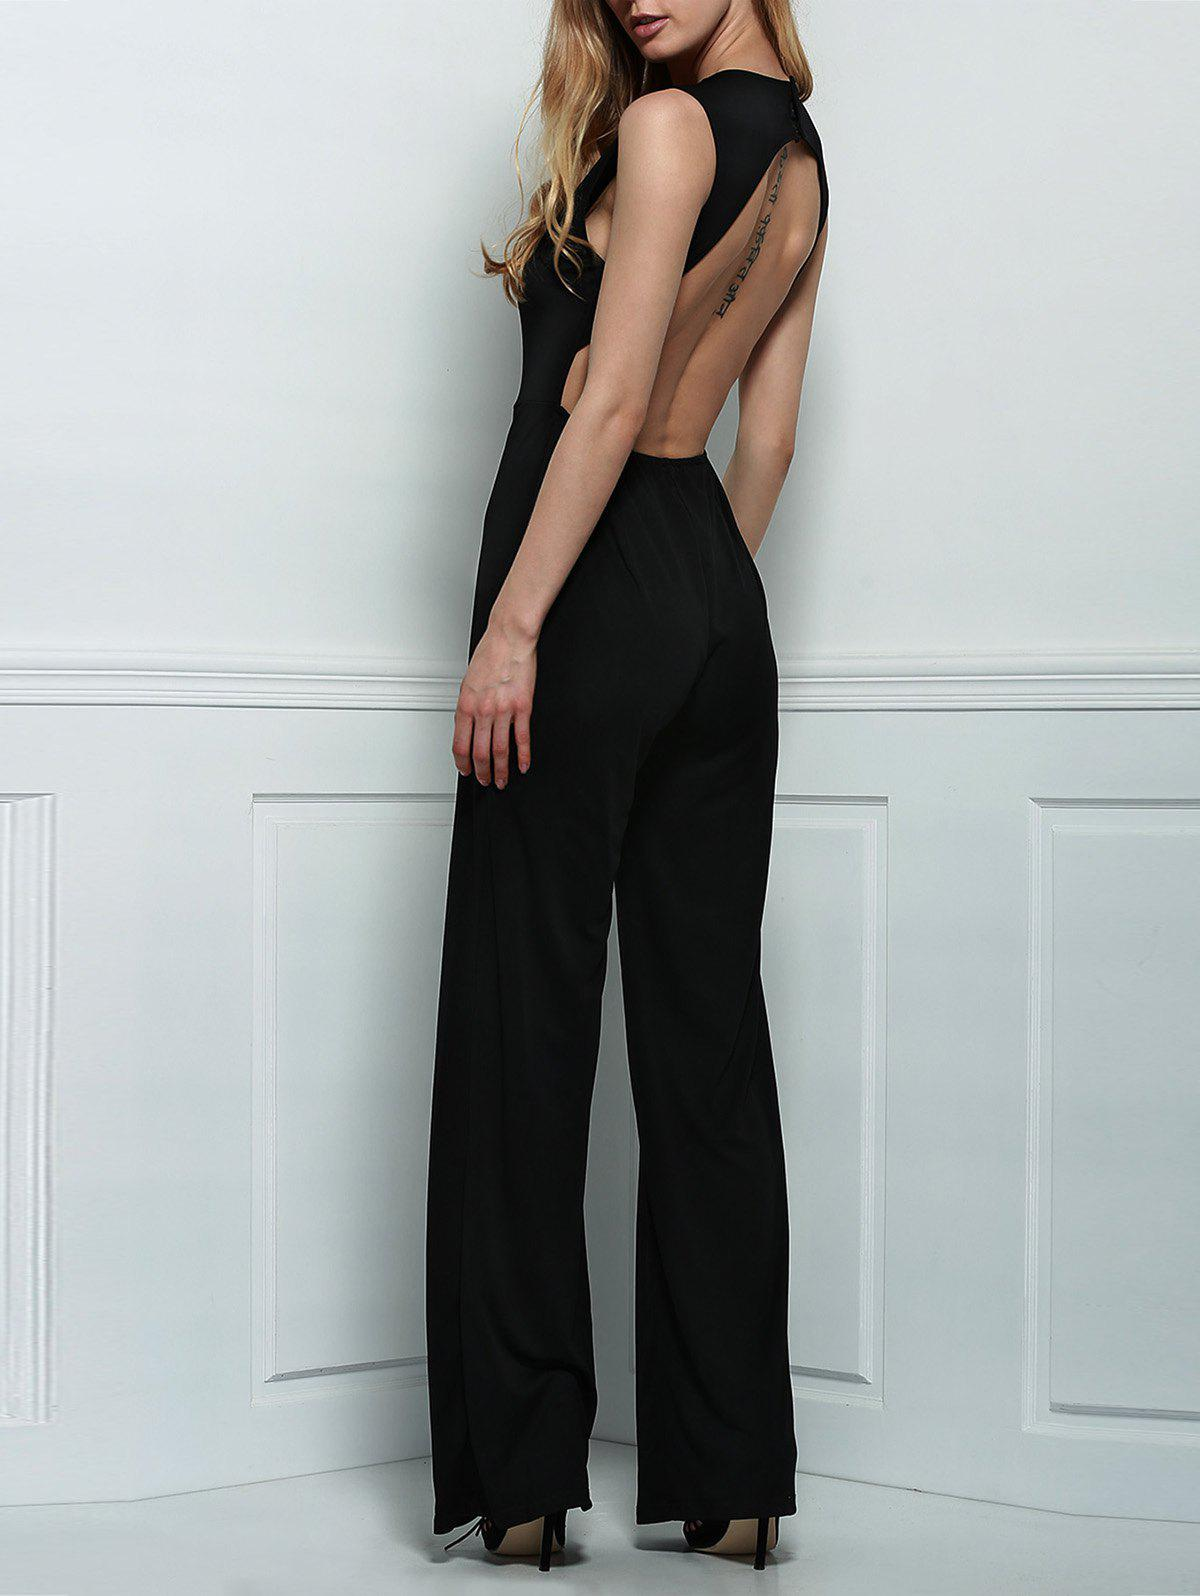 Fashion Sexy Plunging Neck Sleeveless Backless Black Jumpsuit For Women